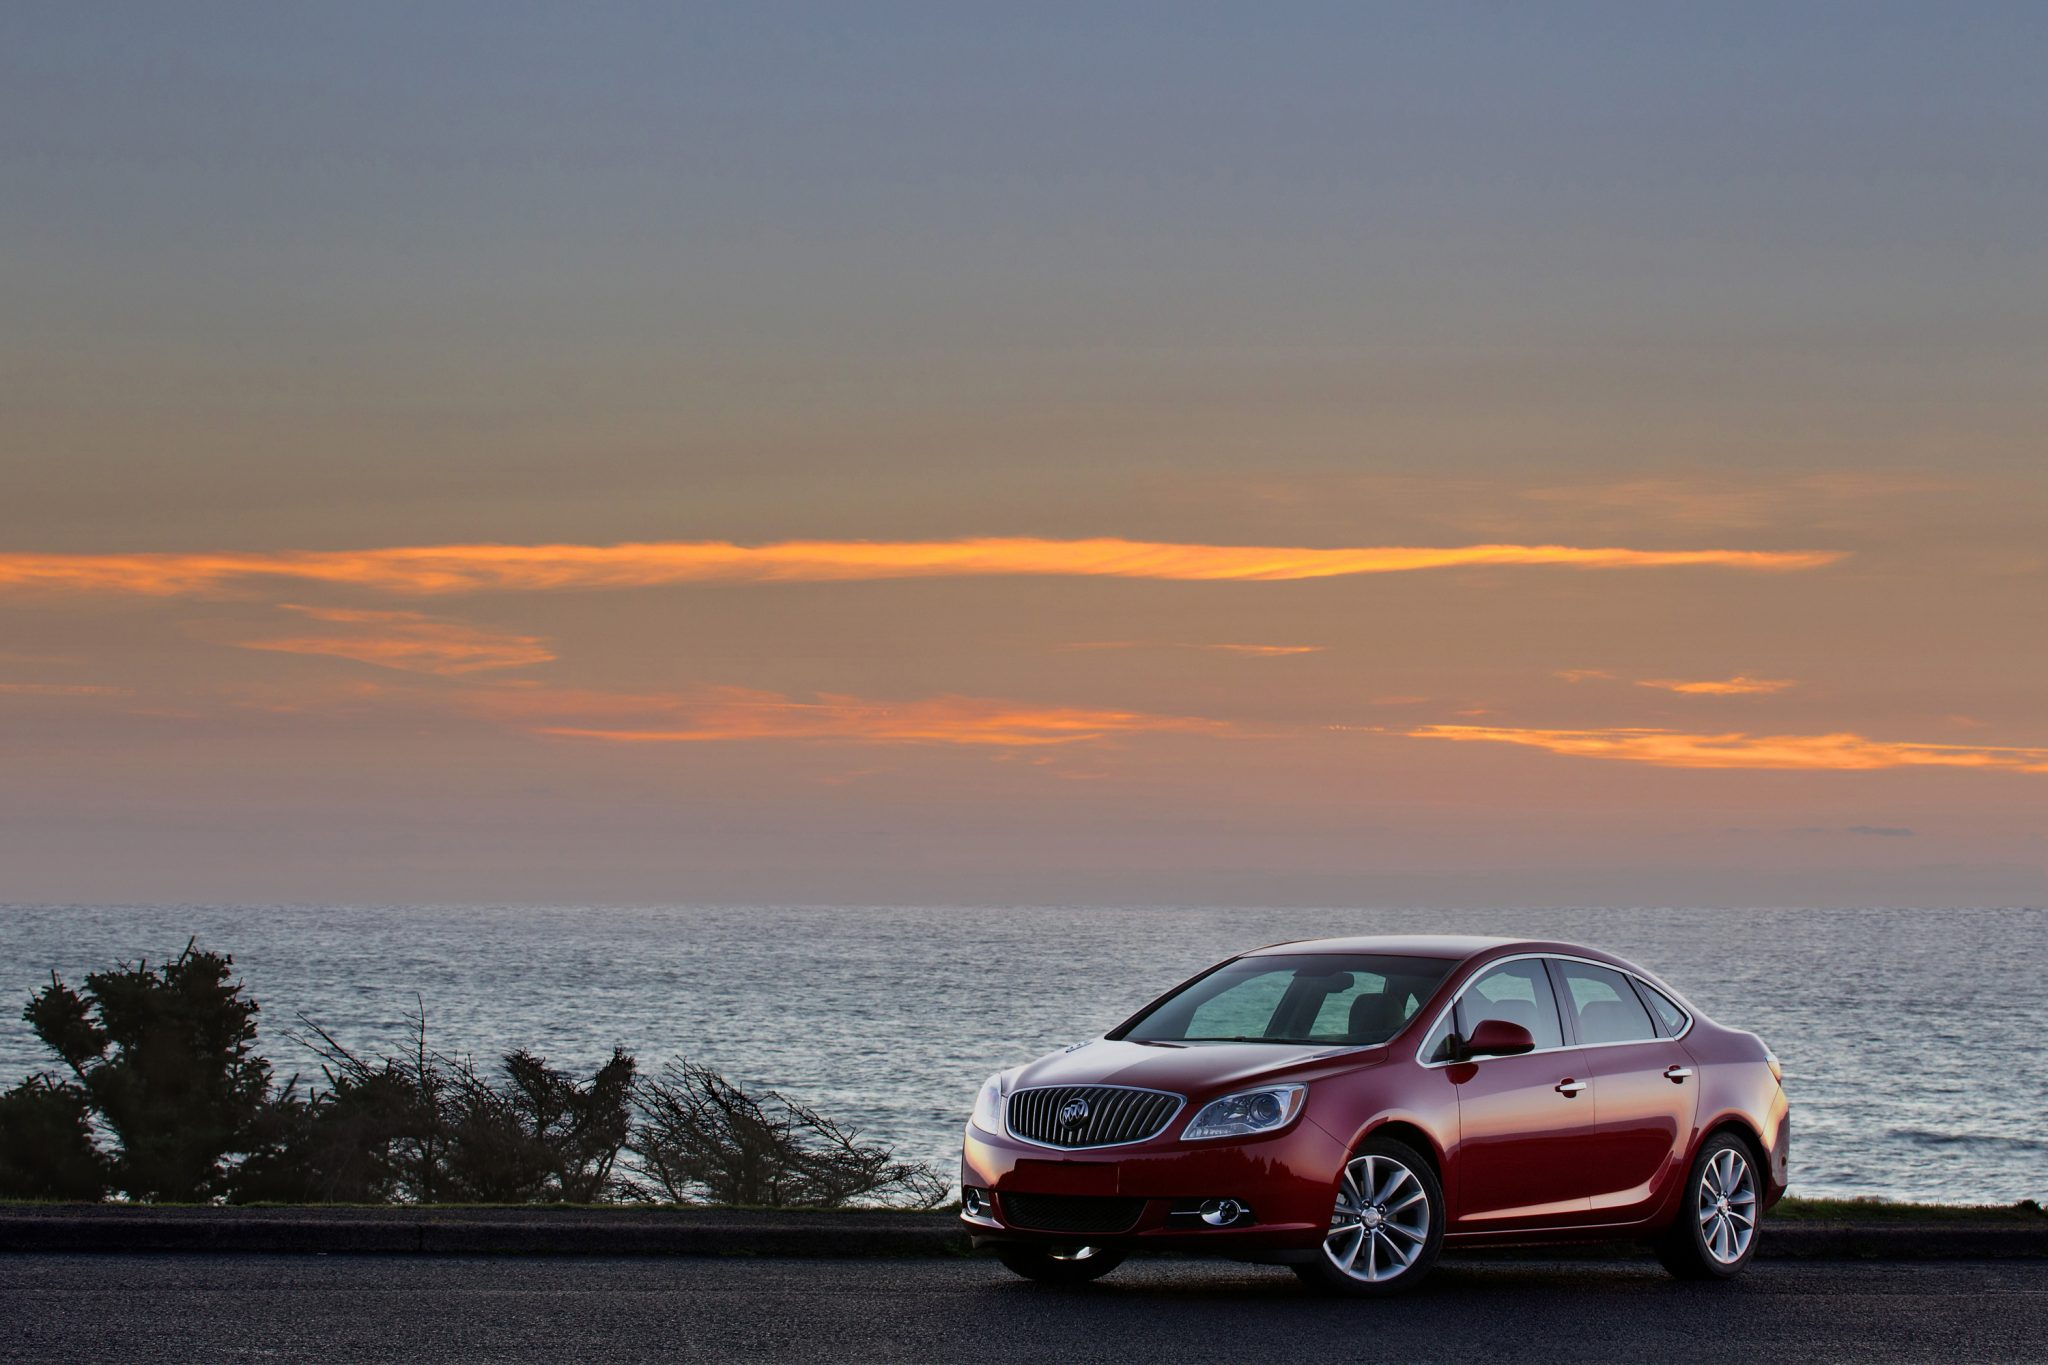 2015 buick verano is priced lower than 2014 model the news wheel. Black Bedroom Furniture Sets. Home Design Ideas